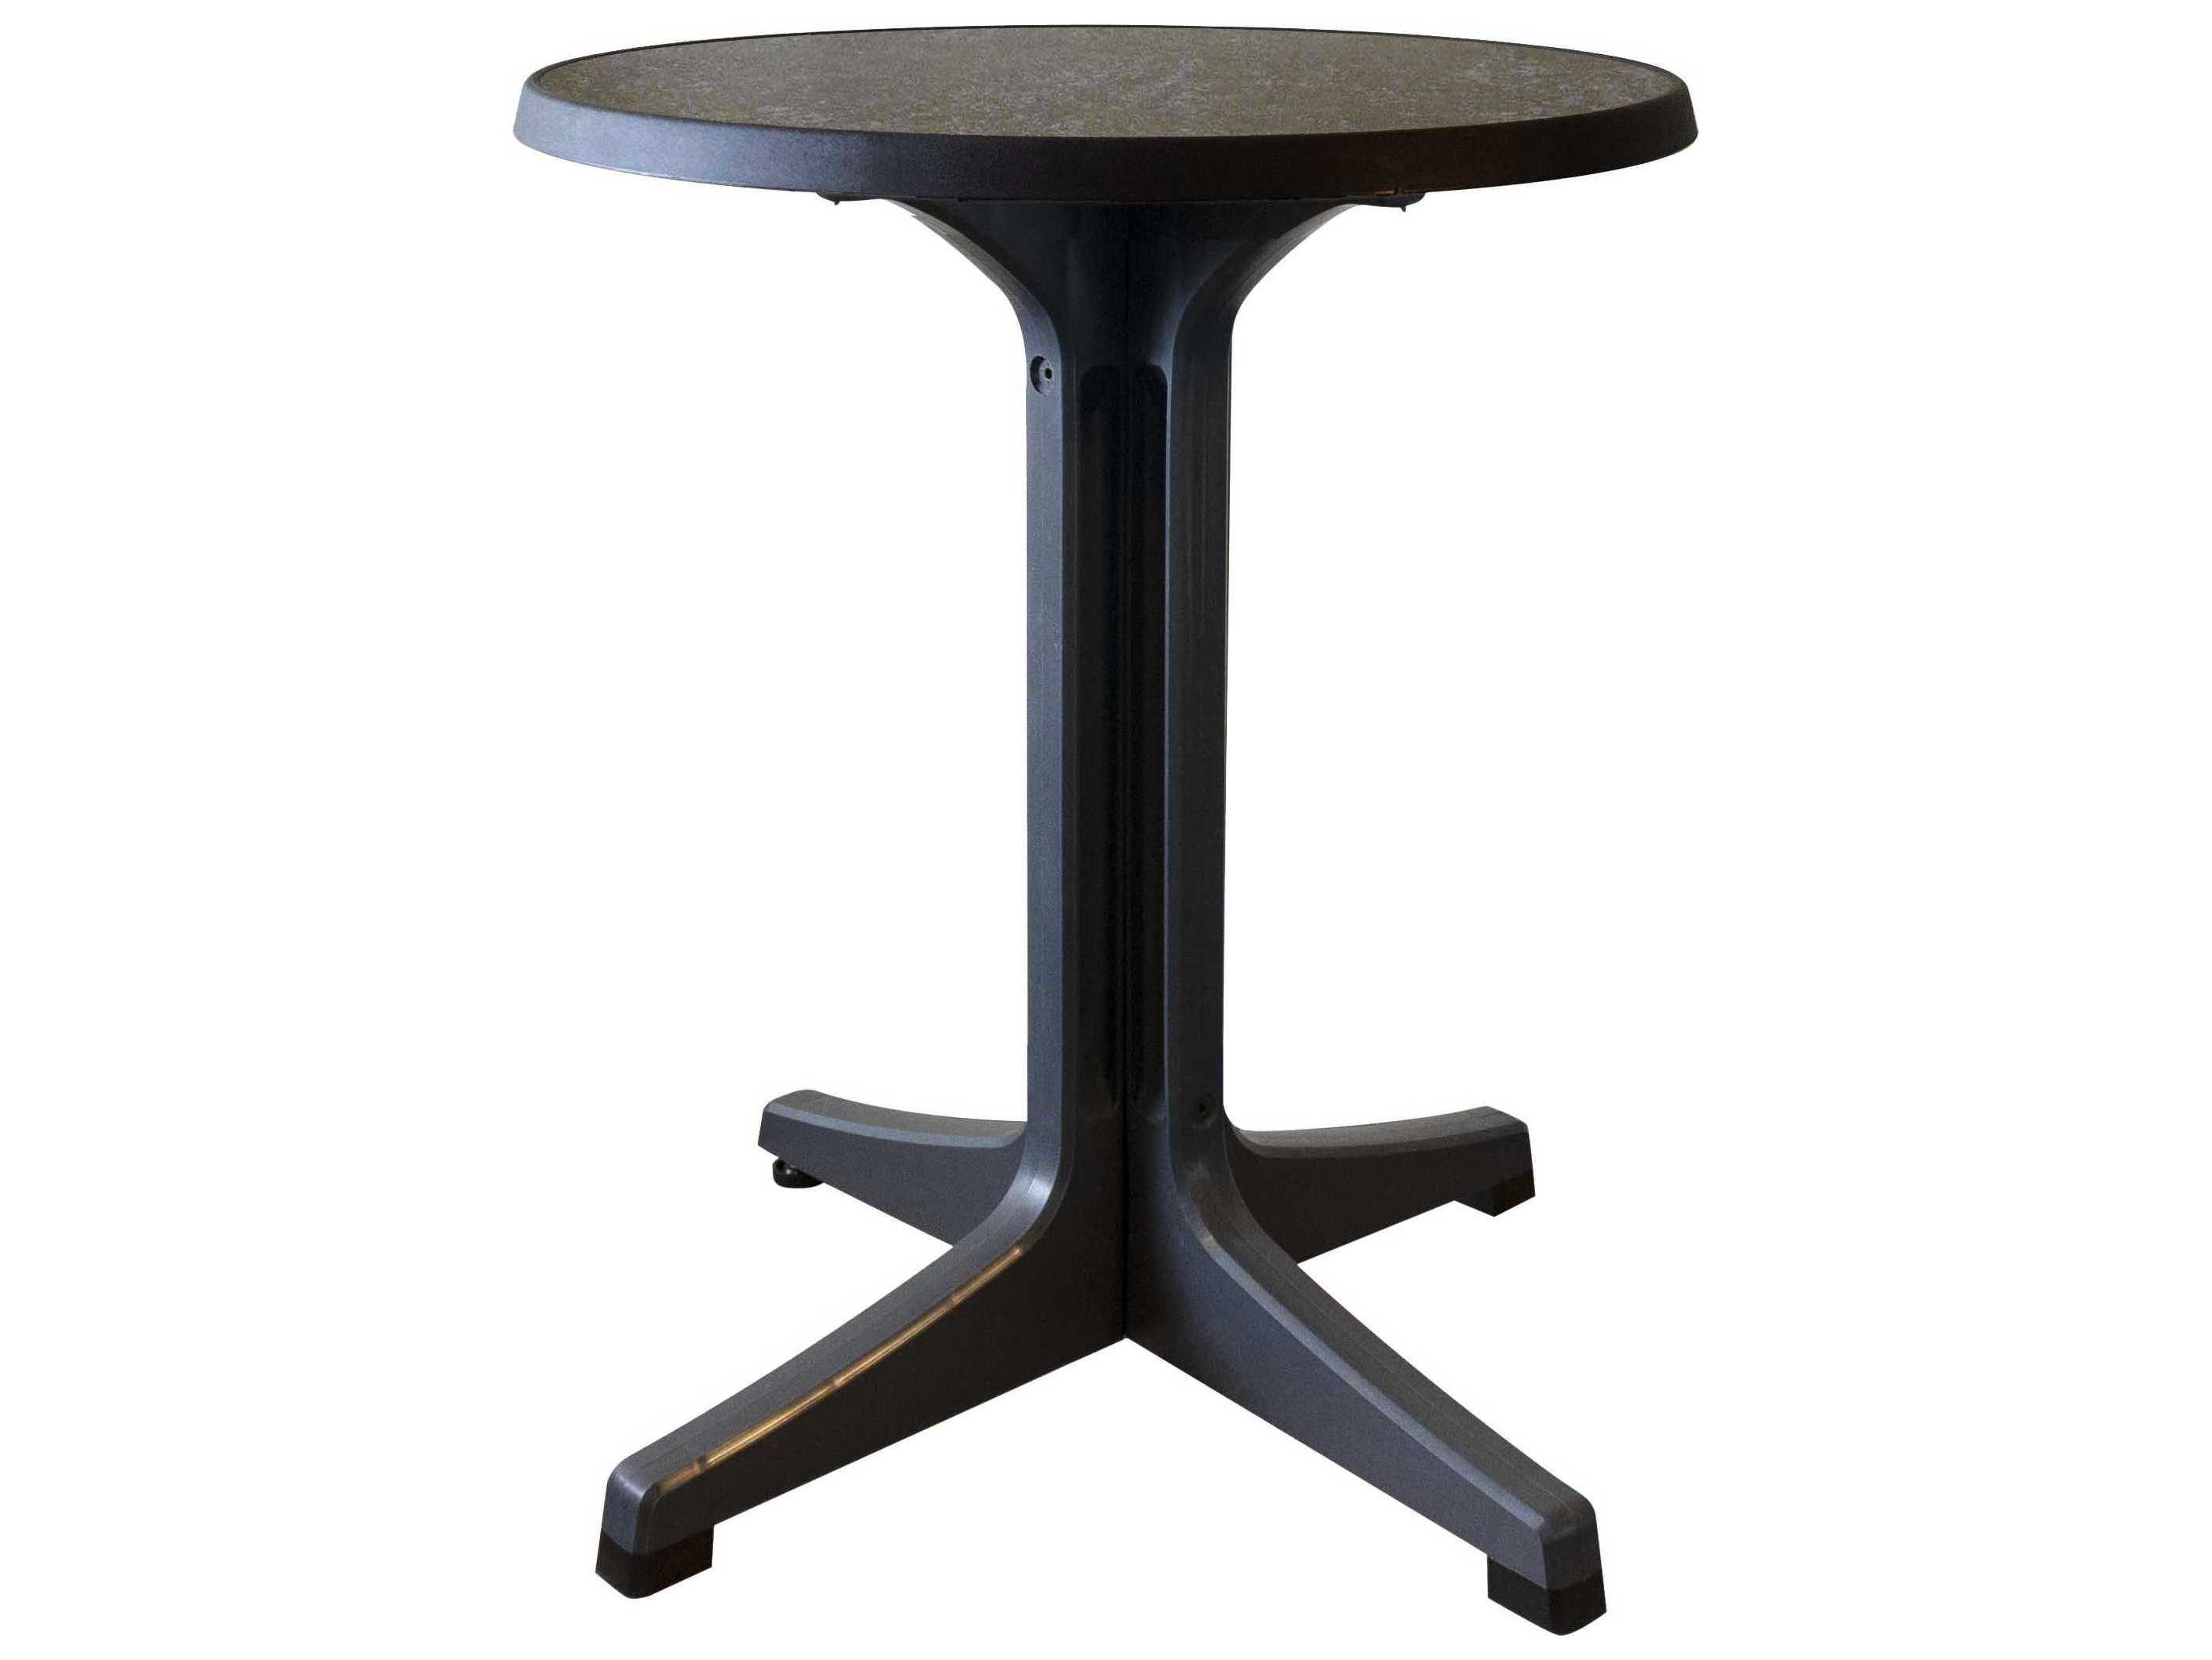 Grosfillex Omega Resin Charcoal 24 Wide Round Dark Concrete Top Bistro Table Gxus287744